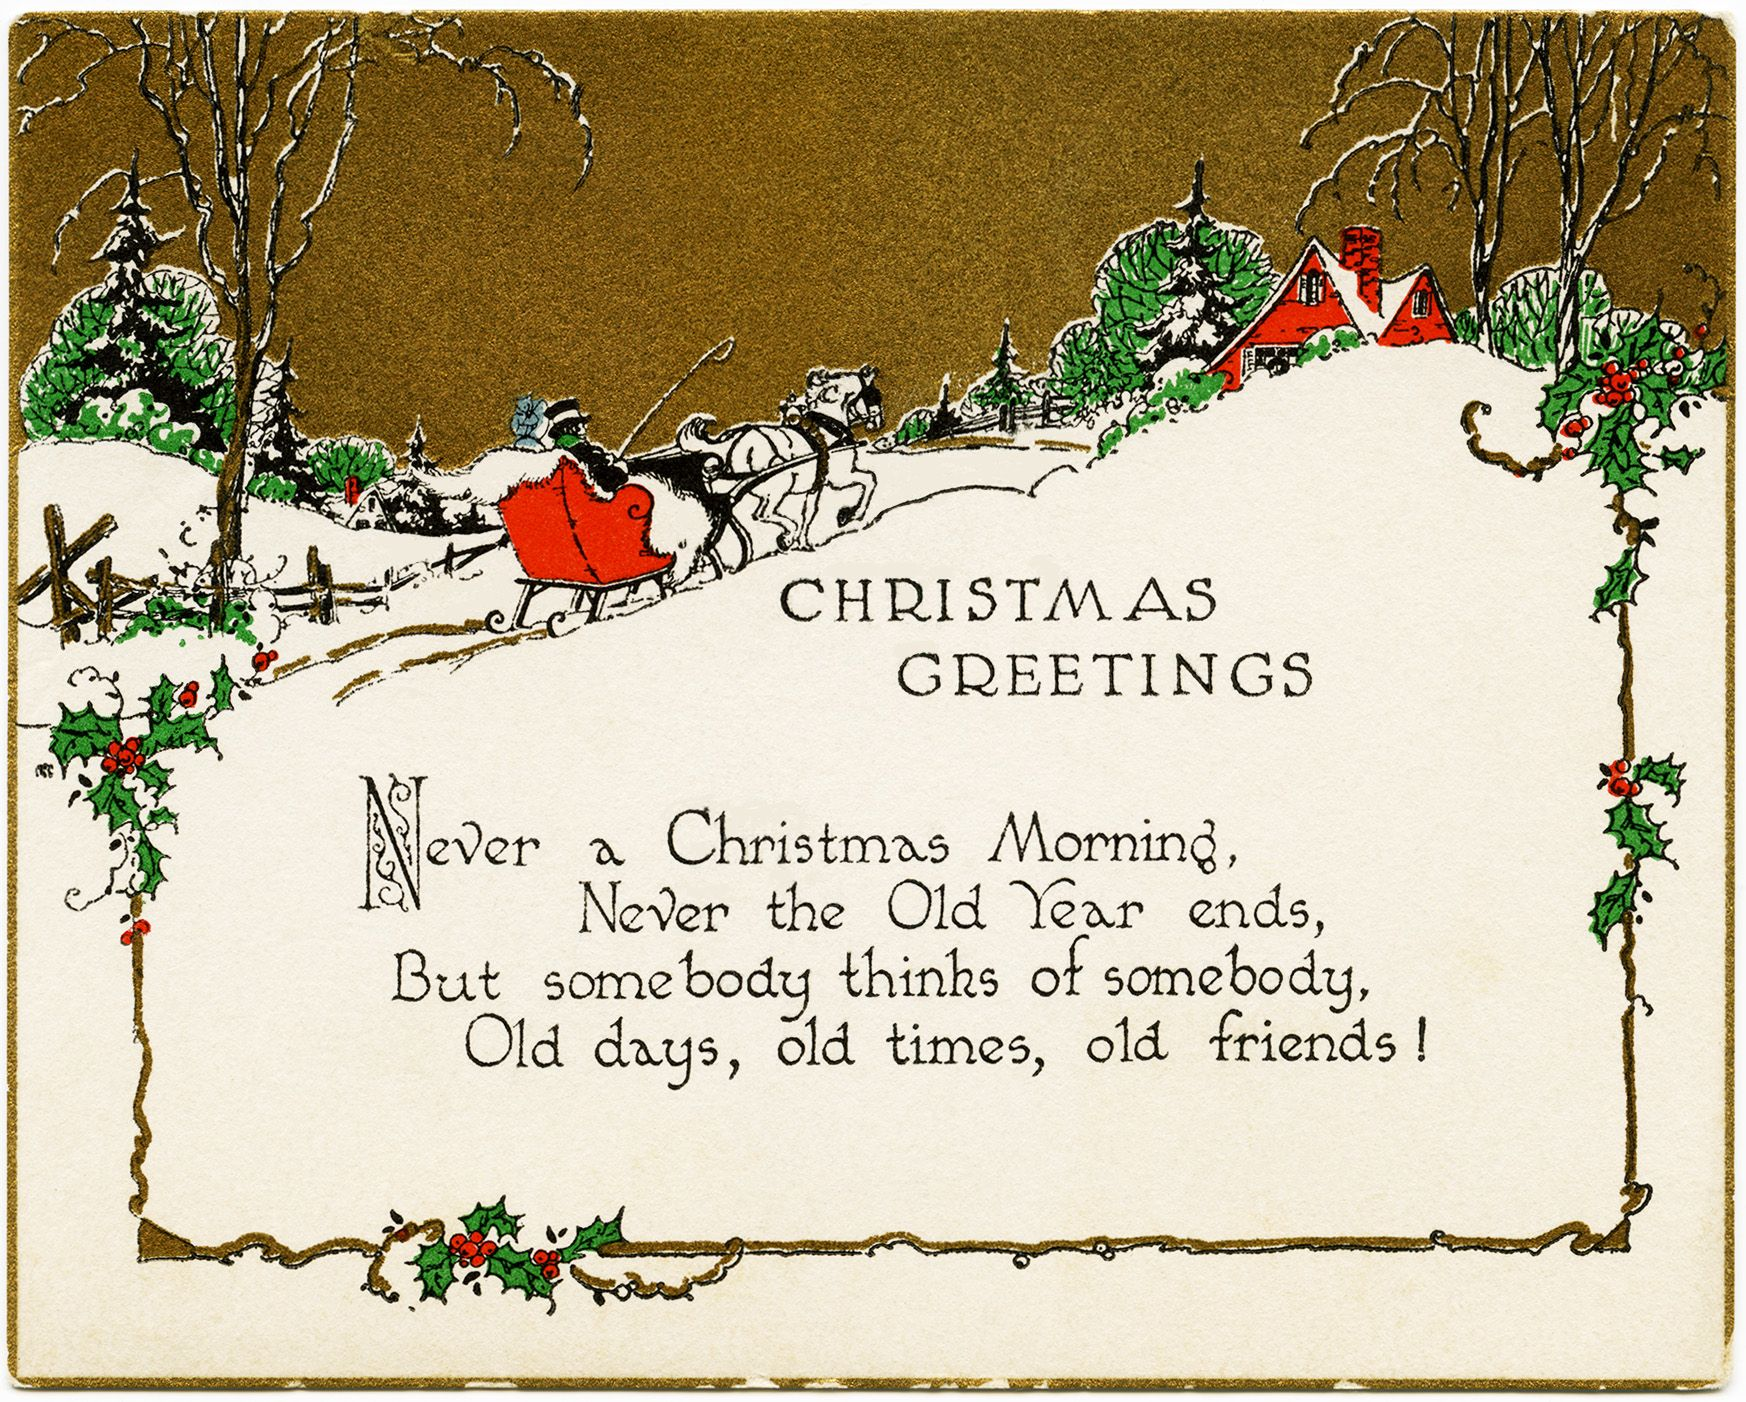 Christmas greetings home - Google Search | Cards ...